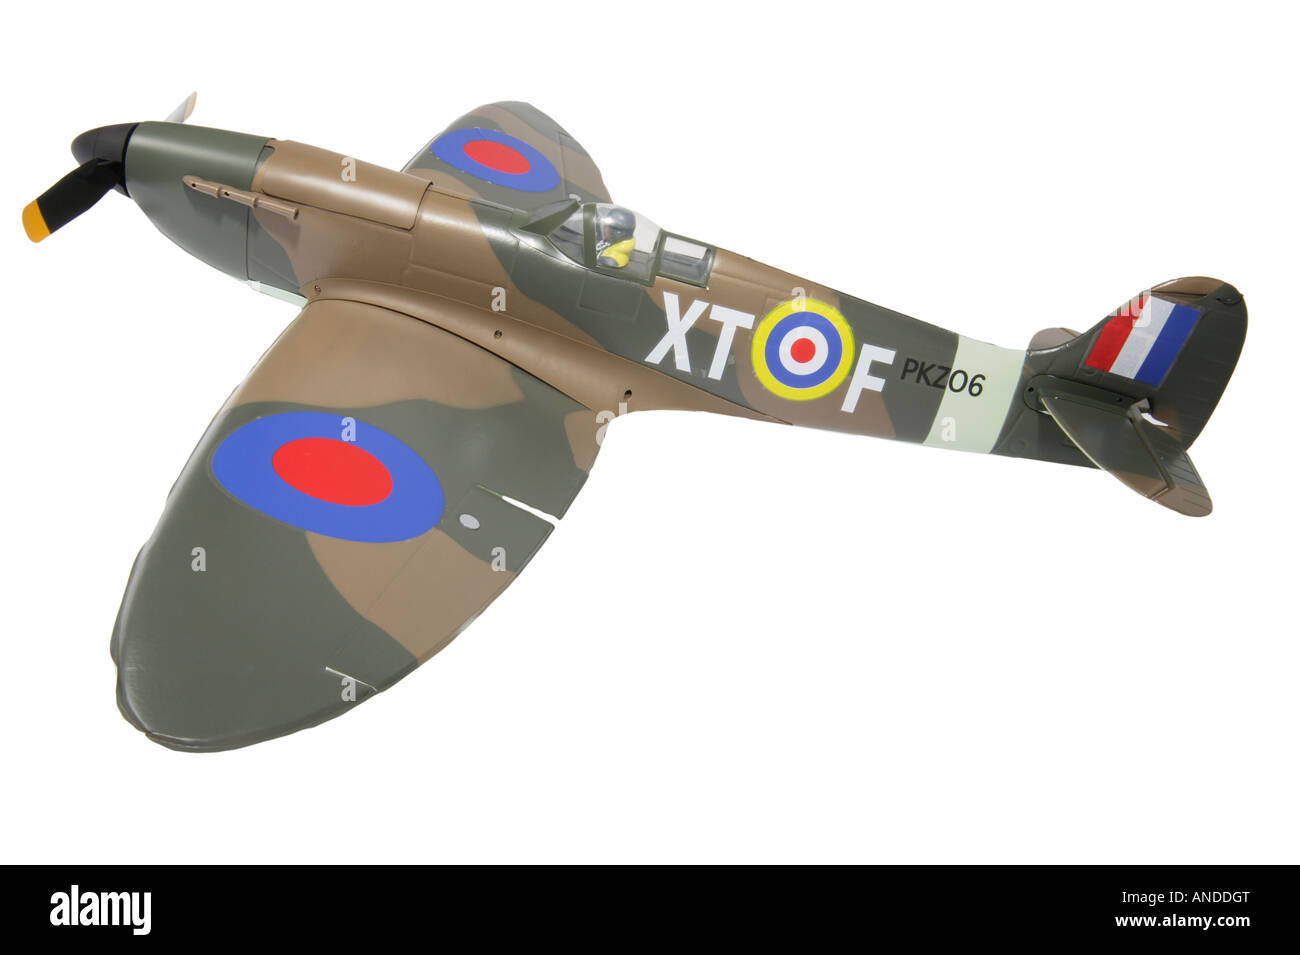 Remote controlled toy Spitfire airplane - Stock Image